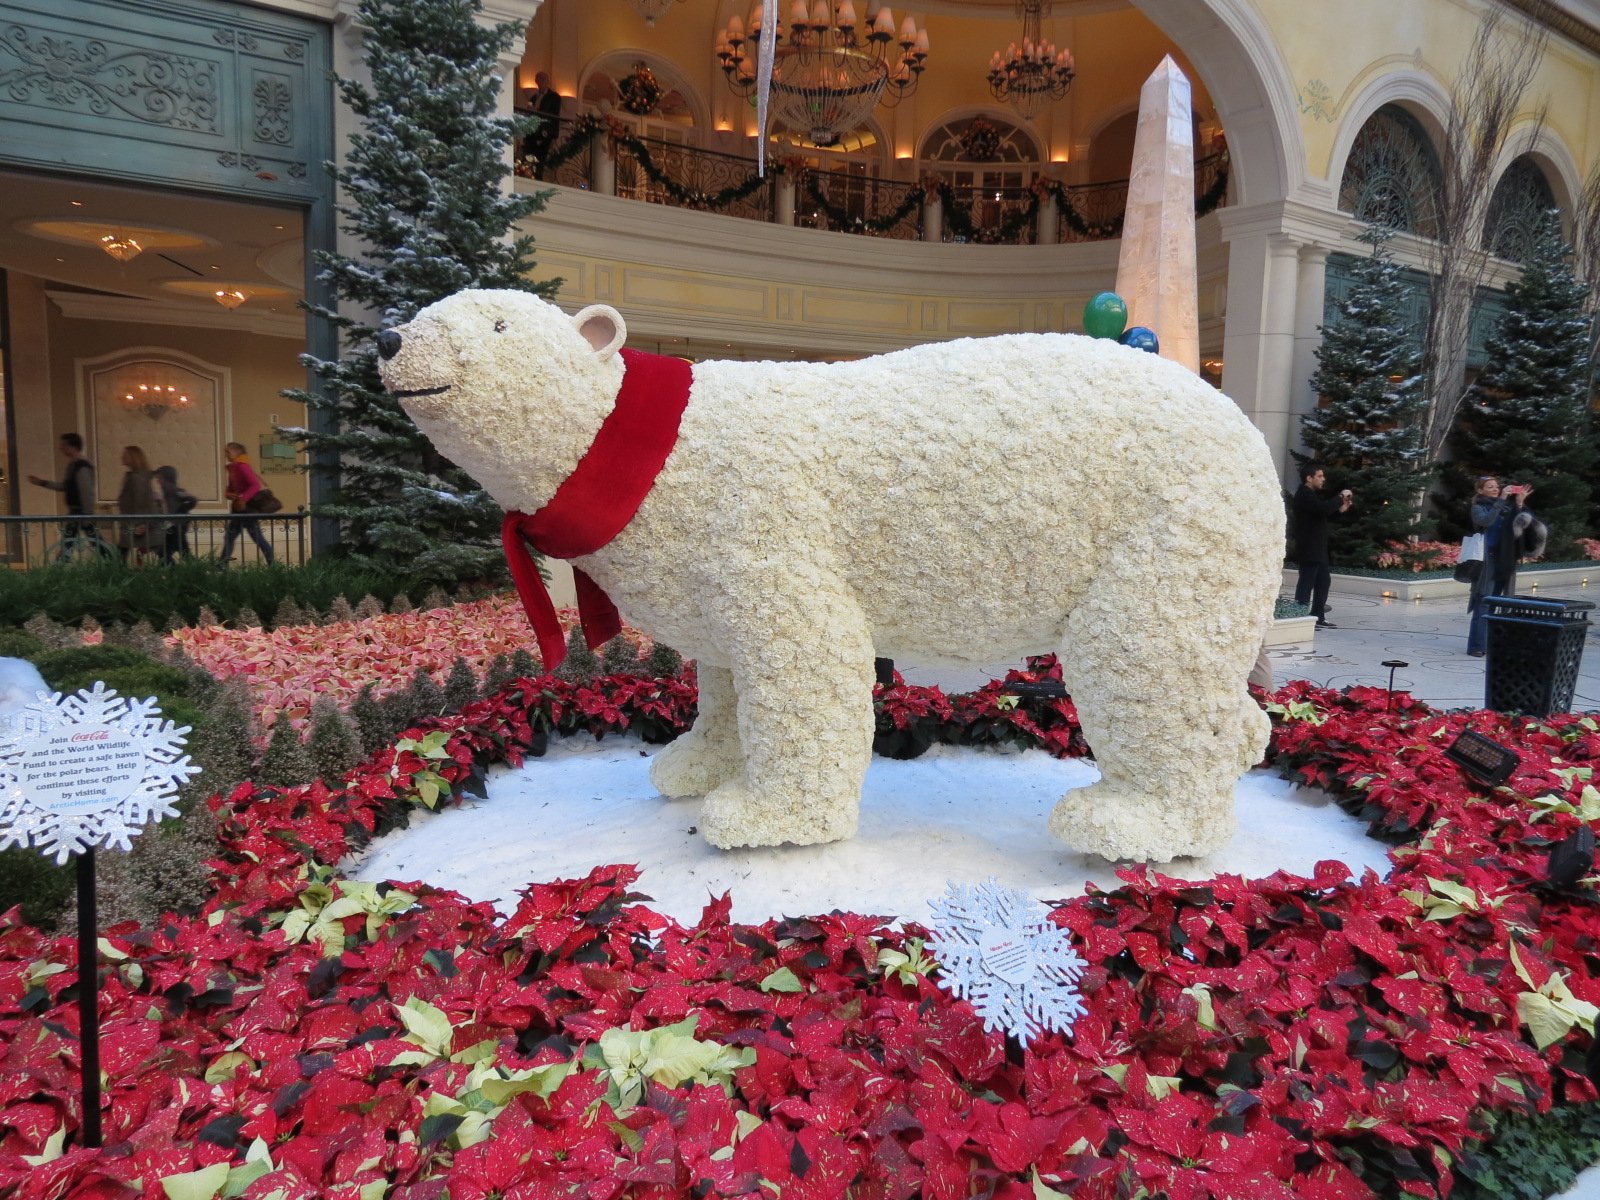 Bear is made out of carnations in the Bellagio